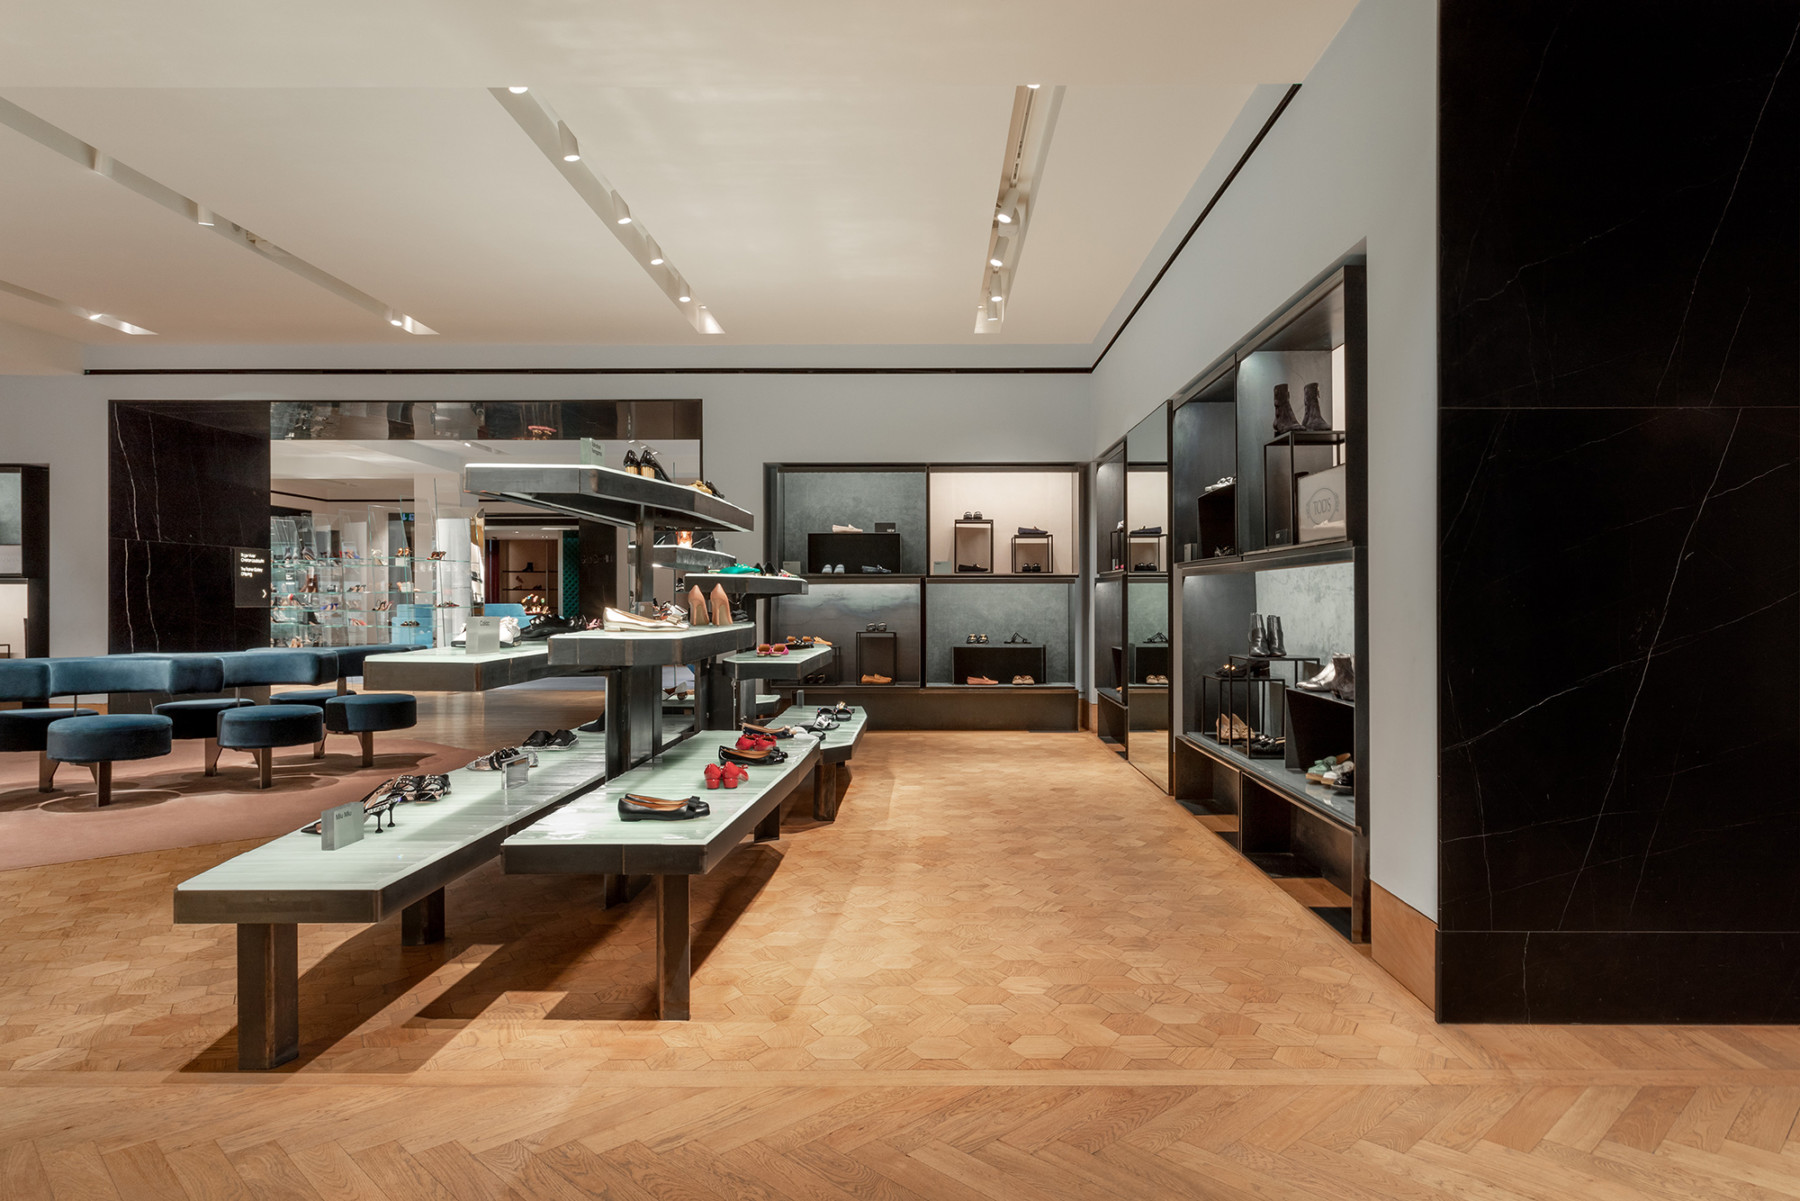 jamie-fobert-architects-selfridges-shoe-galleries-luxury-retail-concept-gallery-design-olivier-hess-photos-(6)